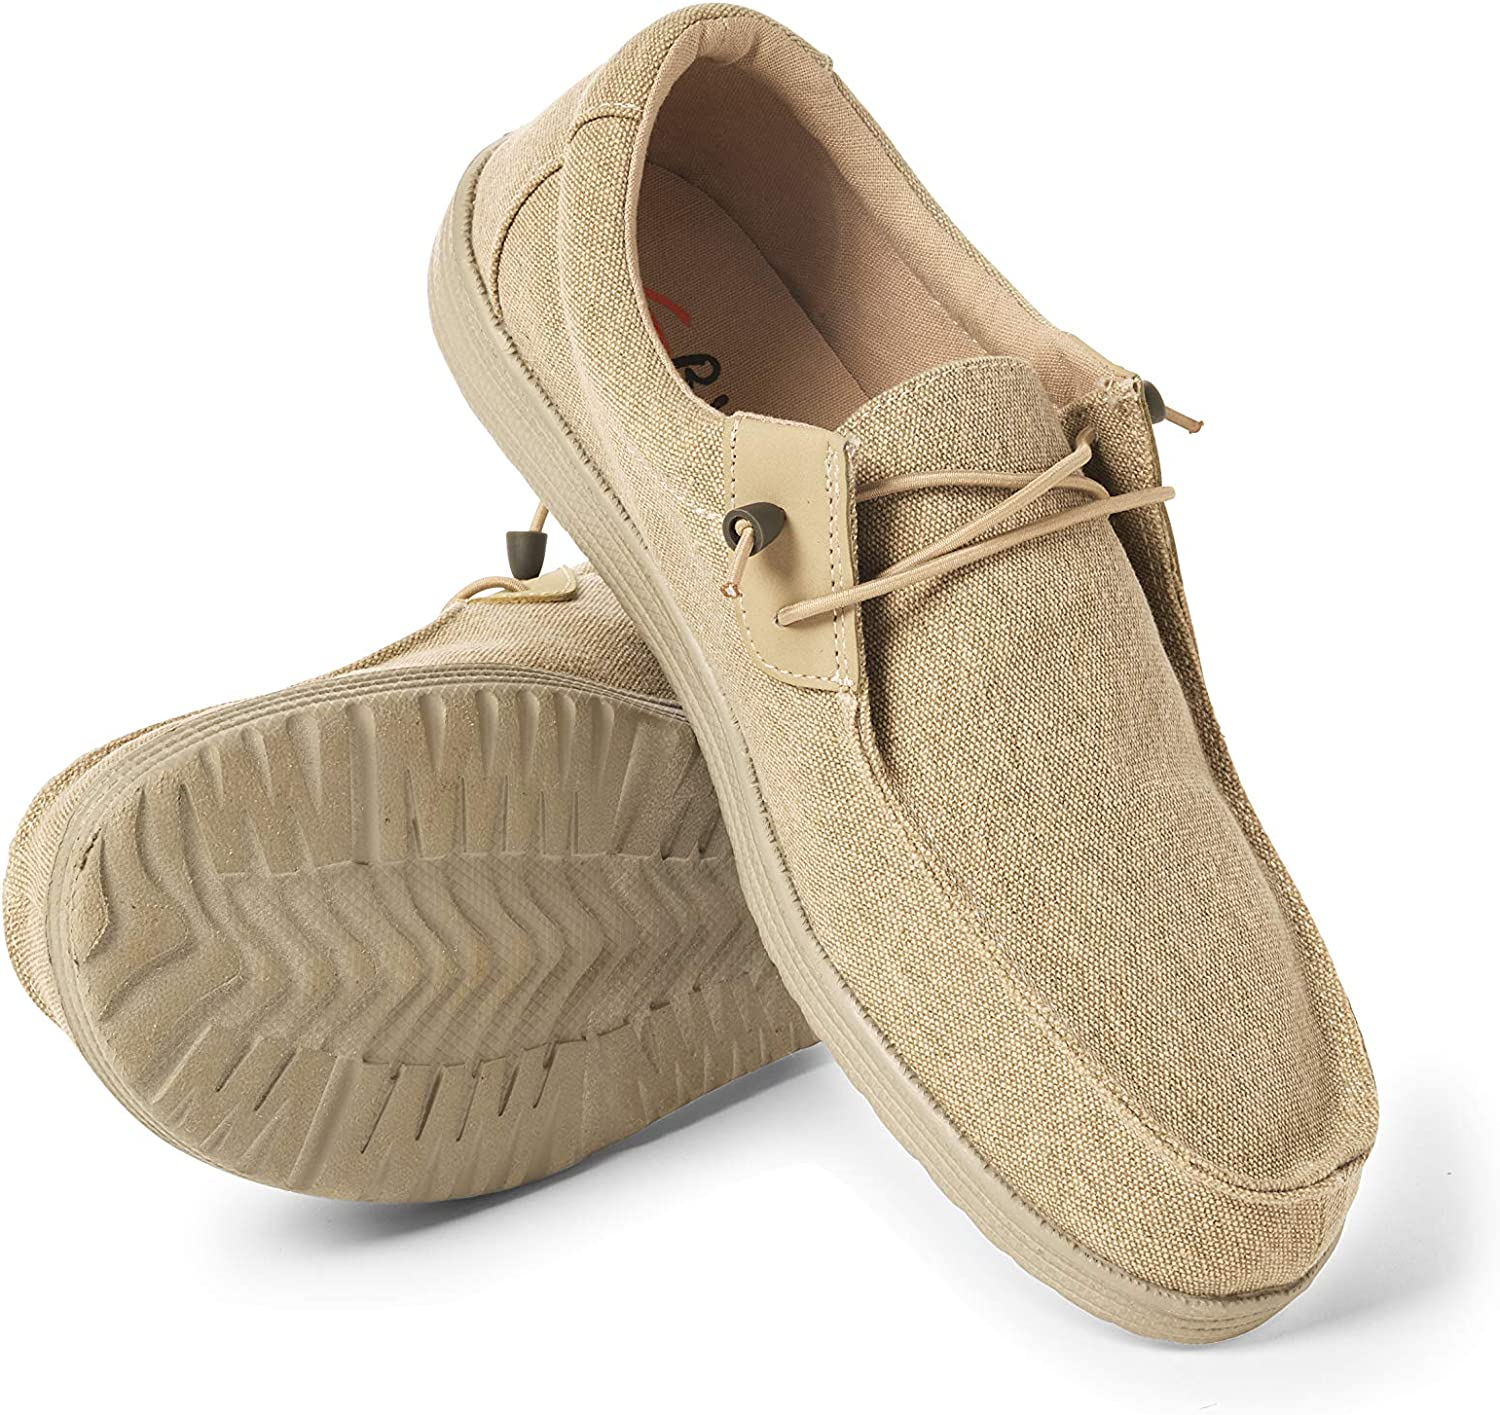 GBX Canvas Slip-On Max 73% OFF Shoes for Comfor Modern Men Mail order cheap Casual Bowery